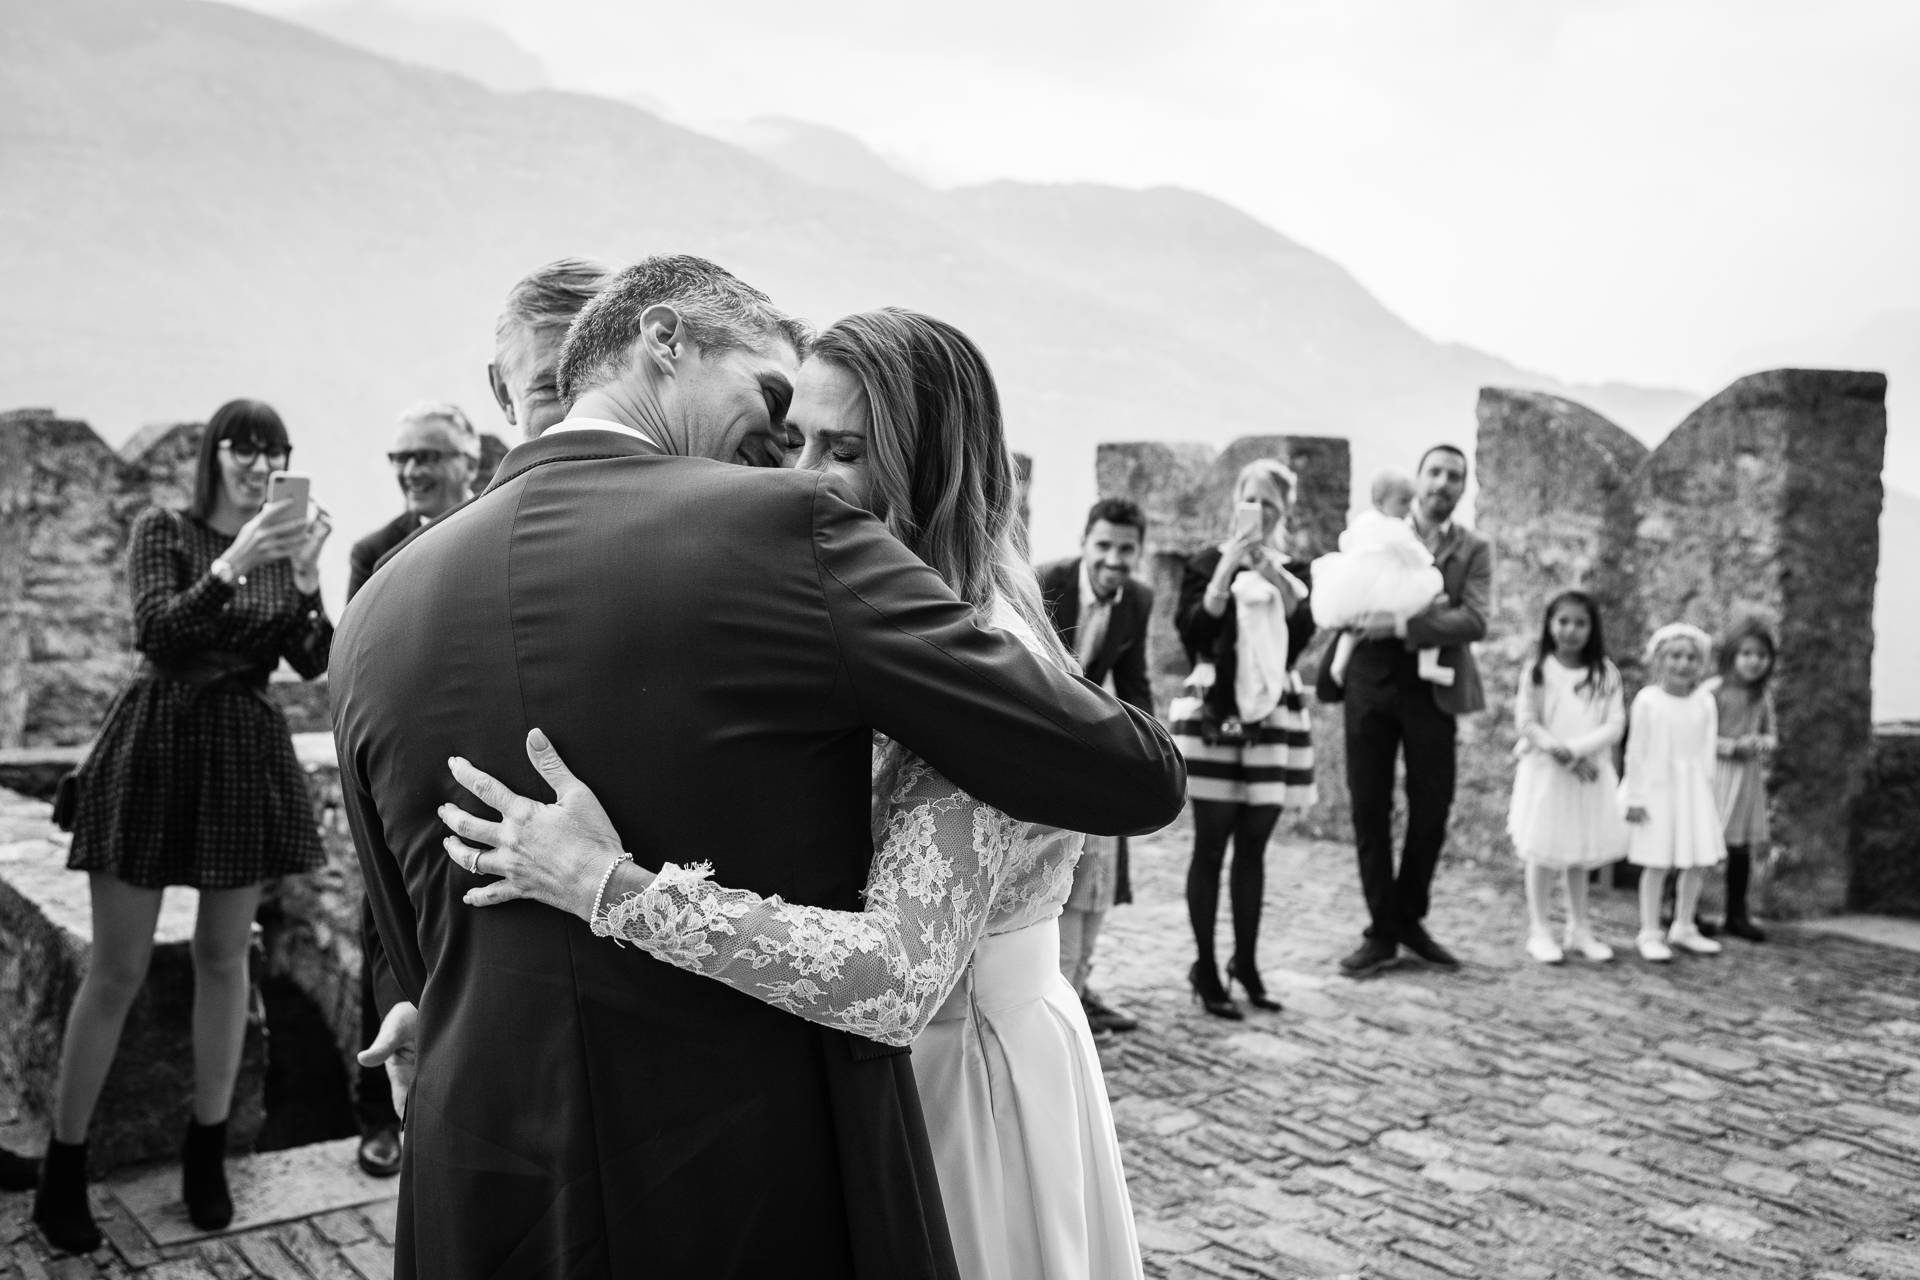 Castello di Sasso Corbaro - Bellinzona CH - Bridal Wedding Image | The bride and groom finally get to see each other for the first time